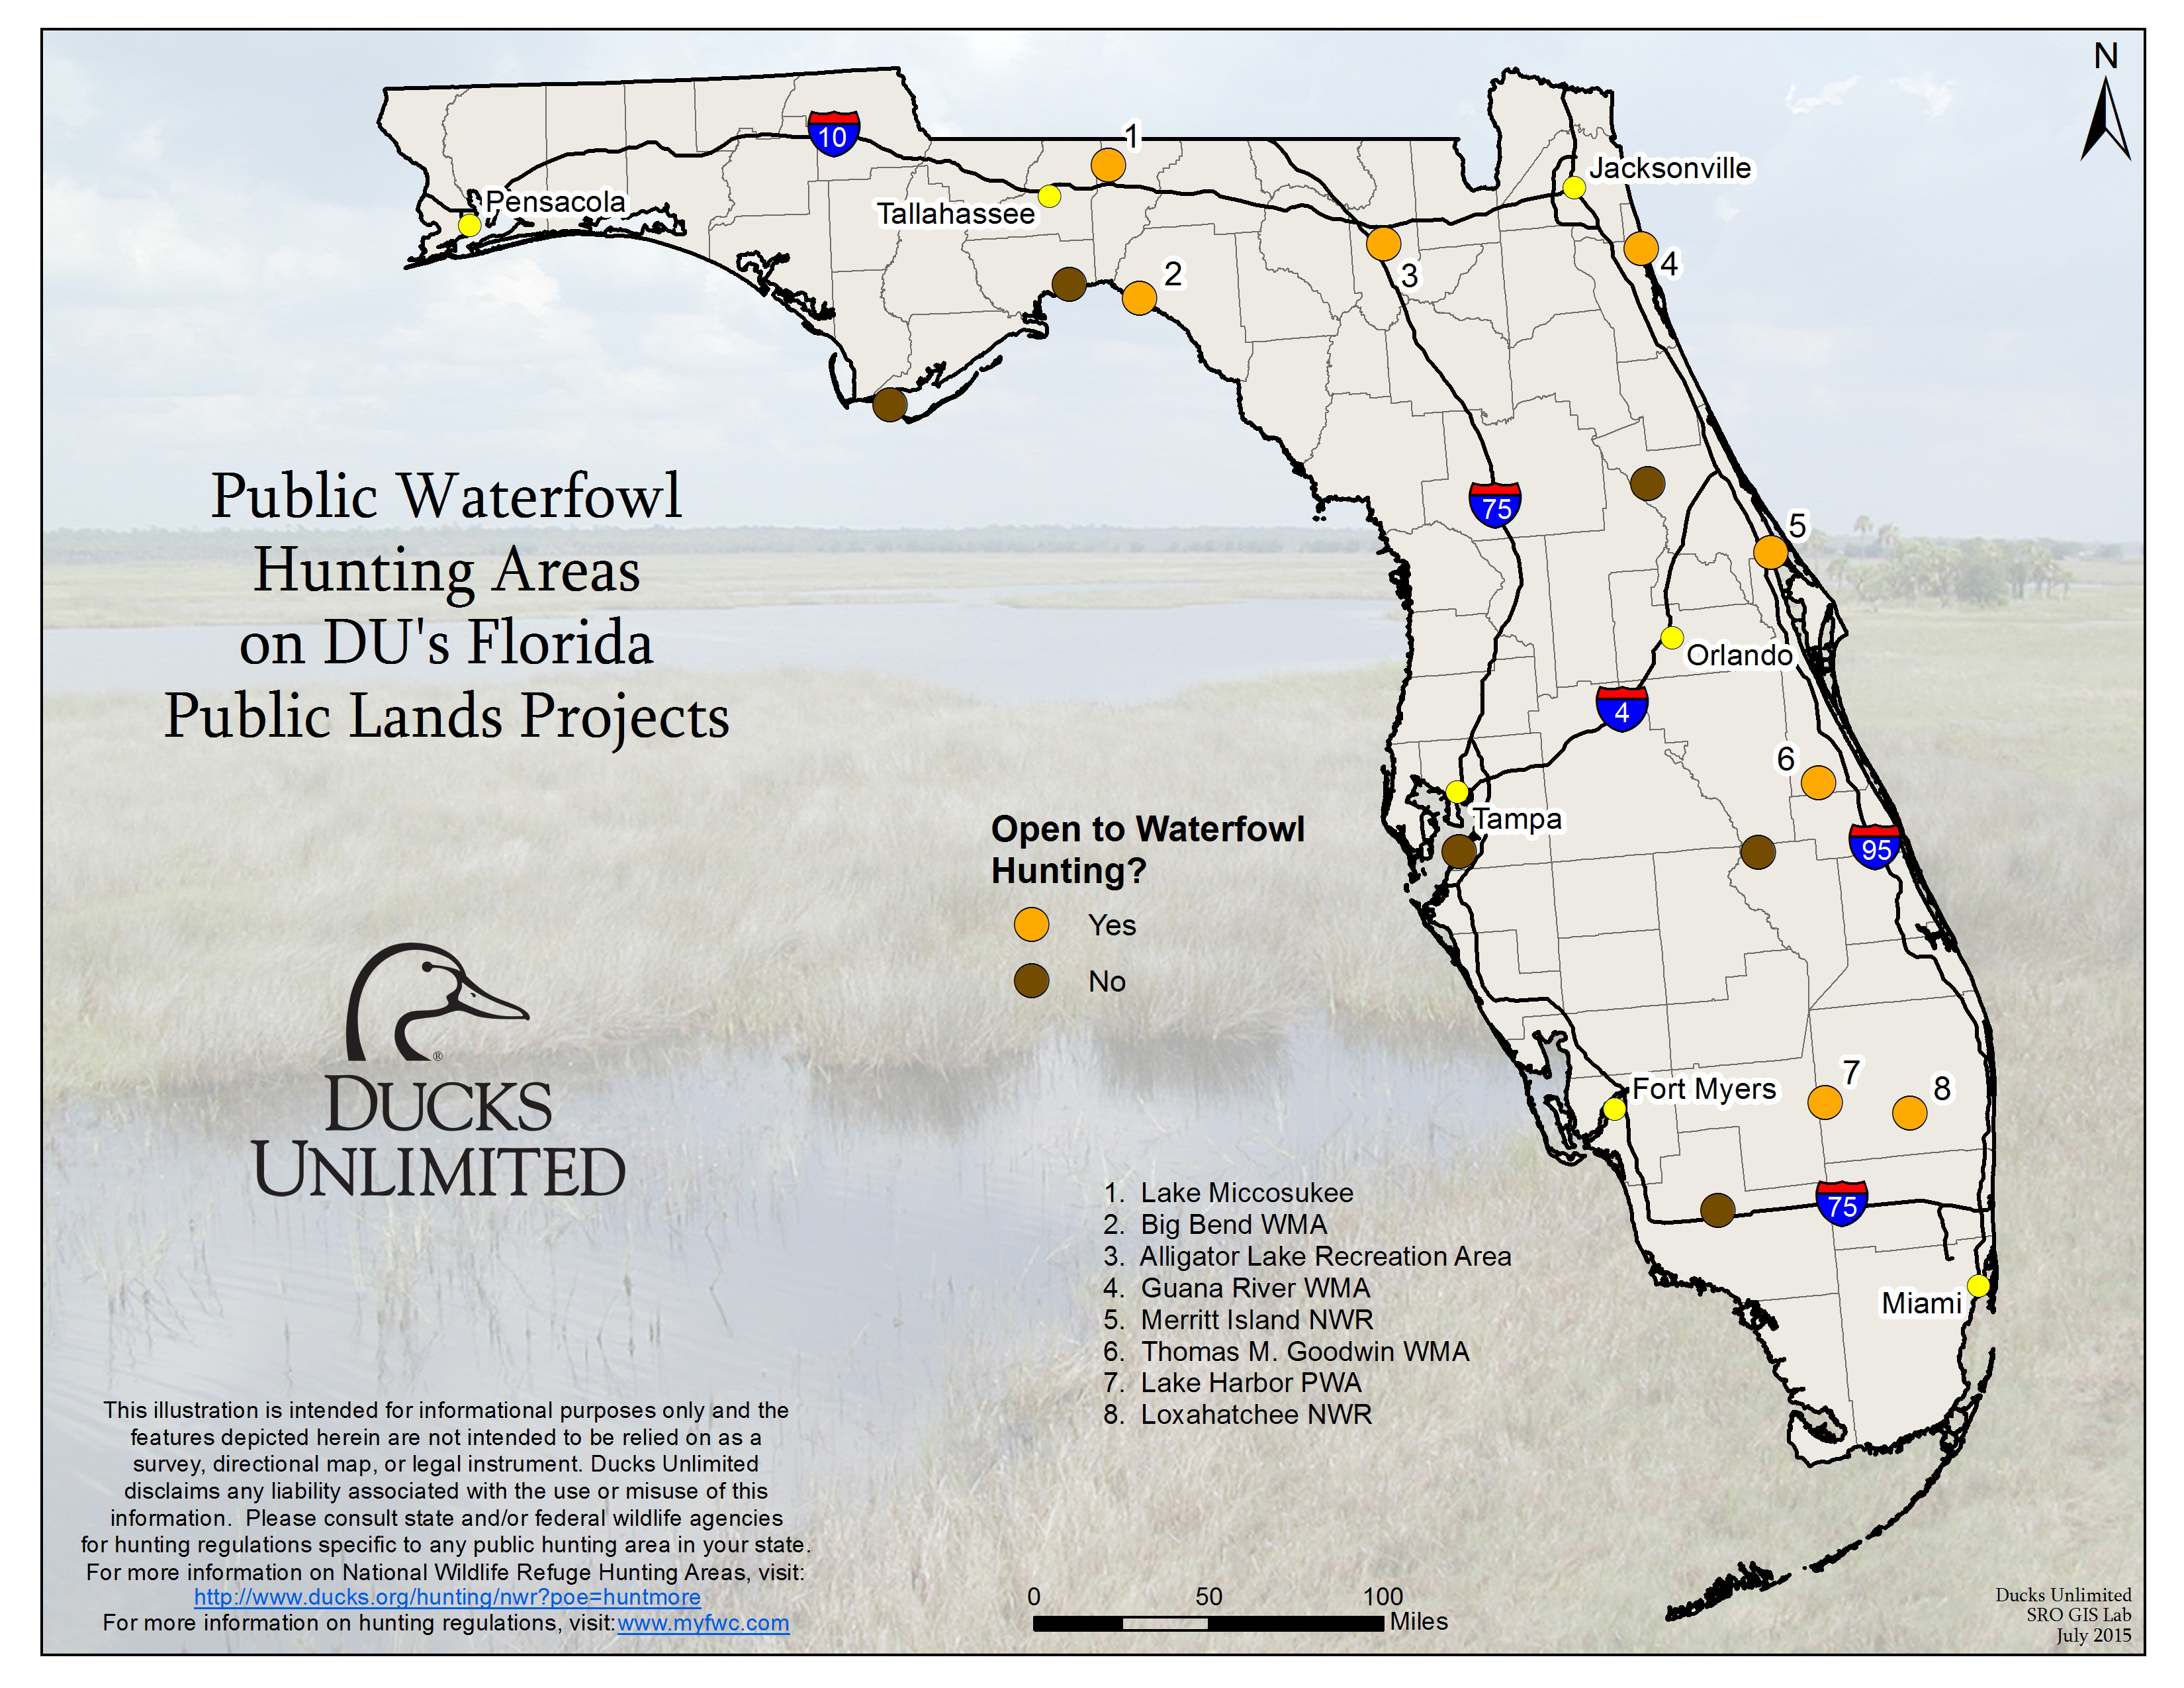 Public Waterfowl Hunting Areas On Du Public Lands Projects - Florida Public Hunting Map